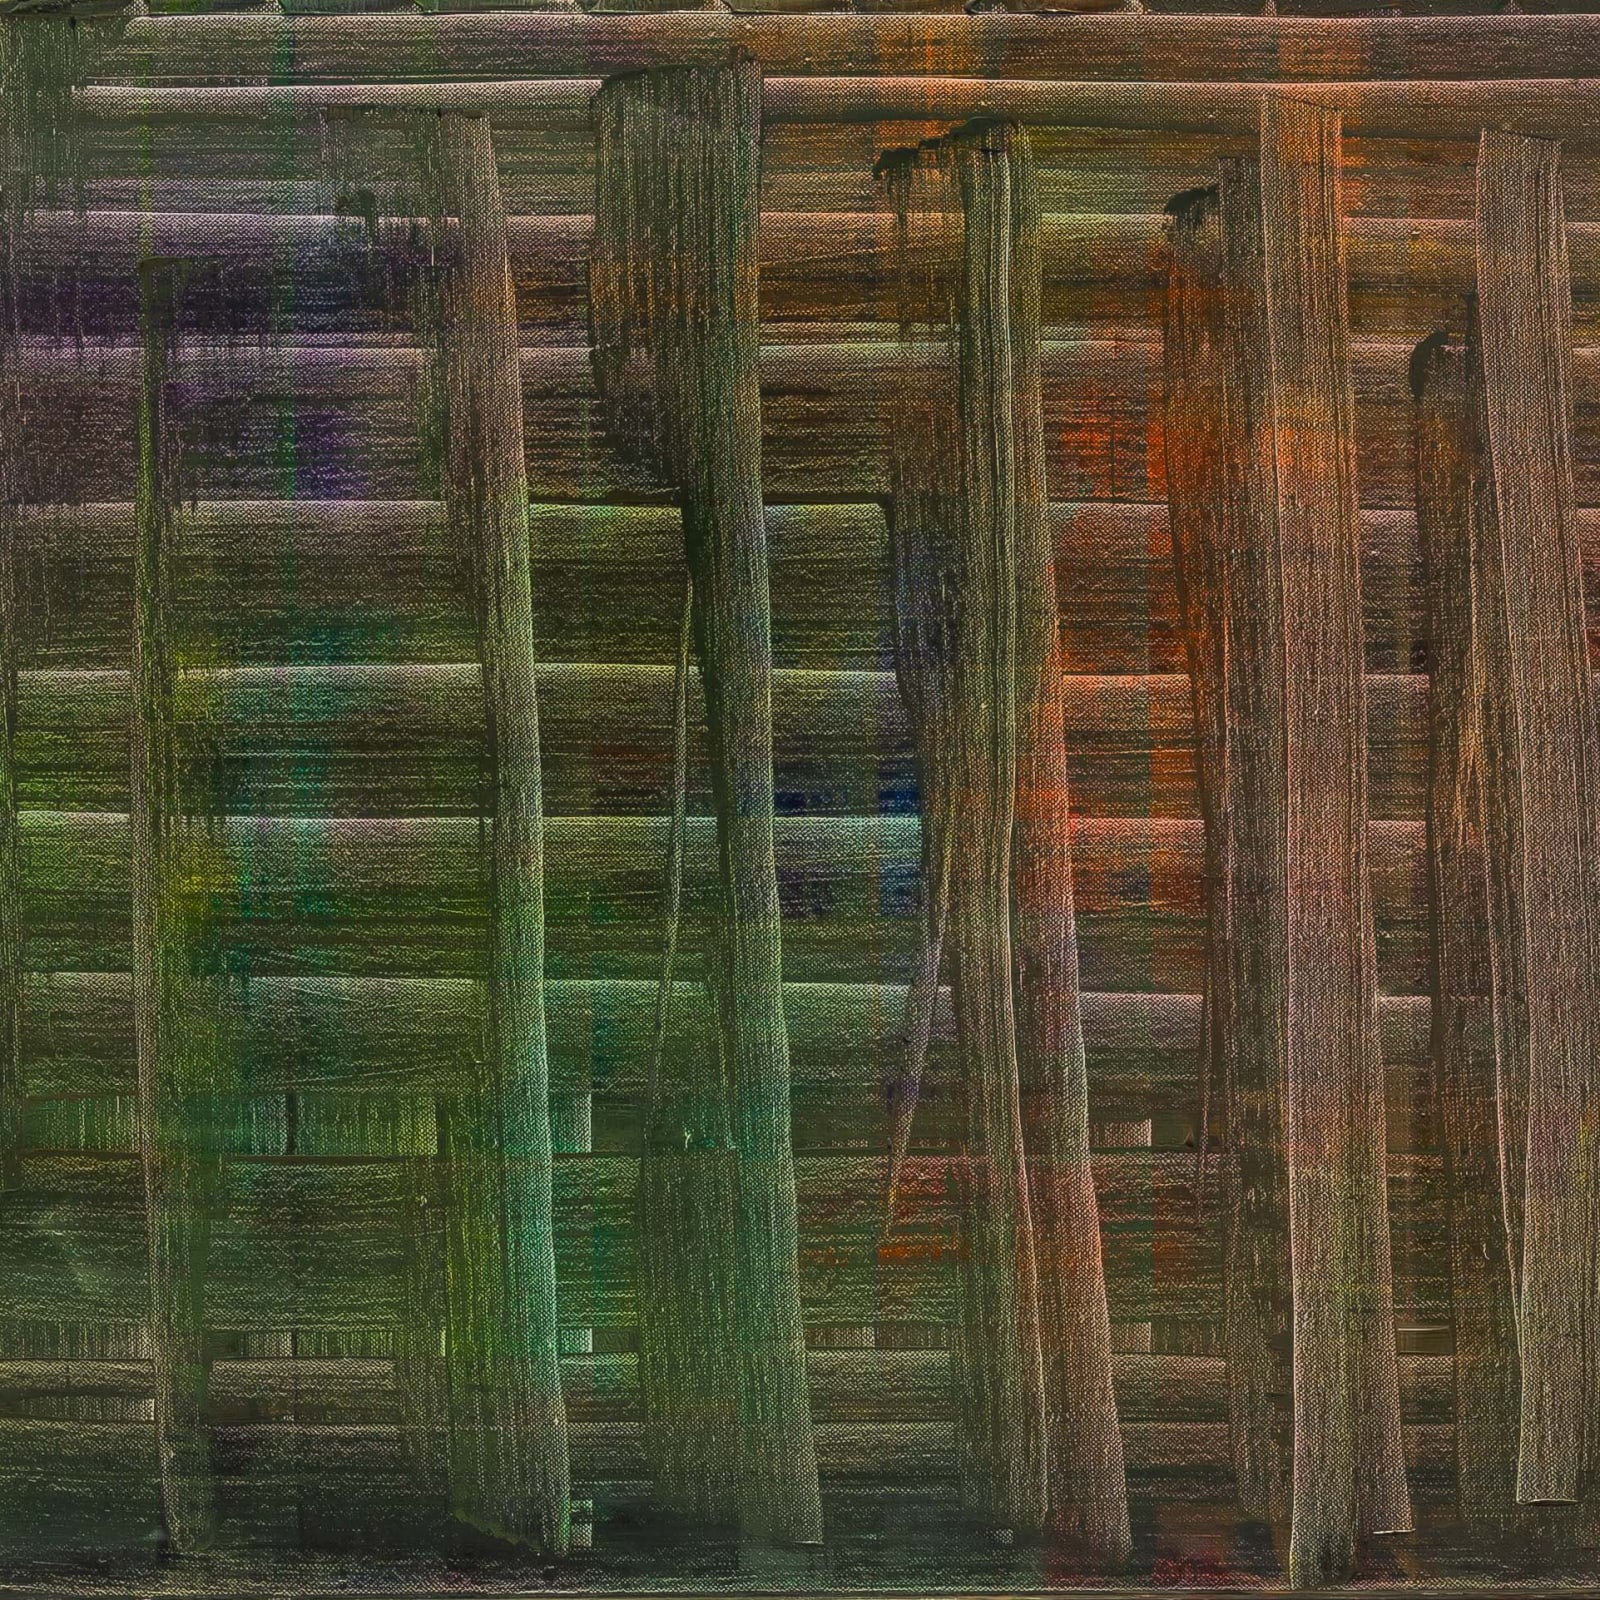 Gerhard Richter, Abstraktes Bild [Abstract Painting], 1992